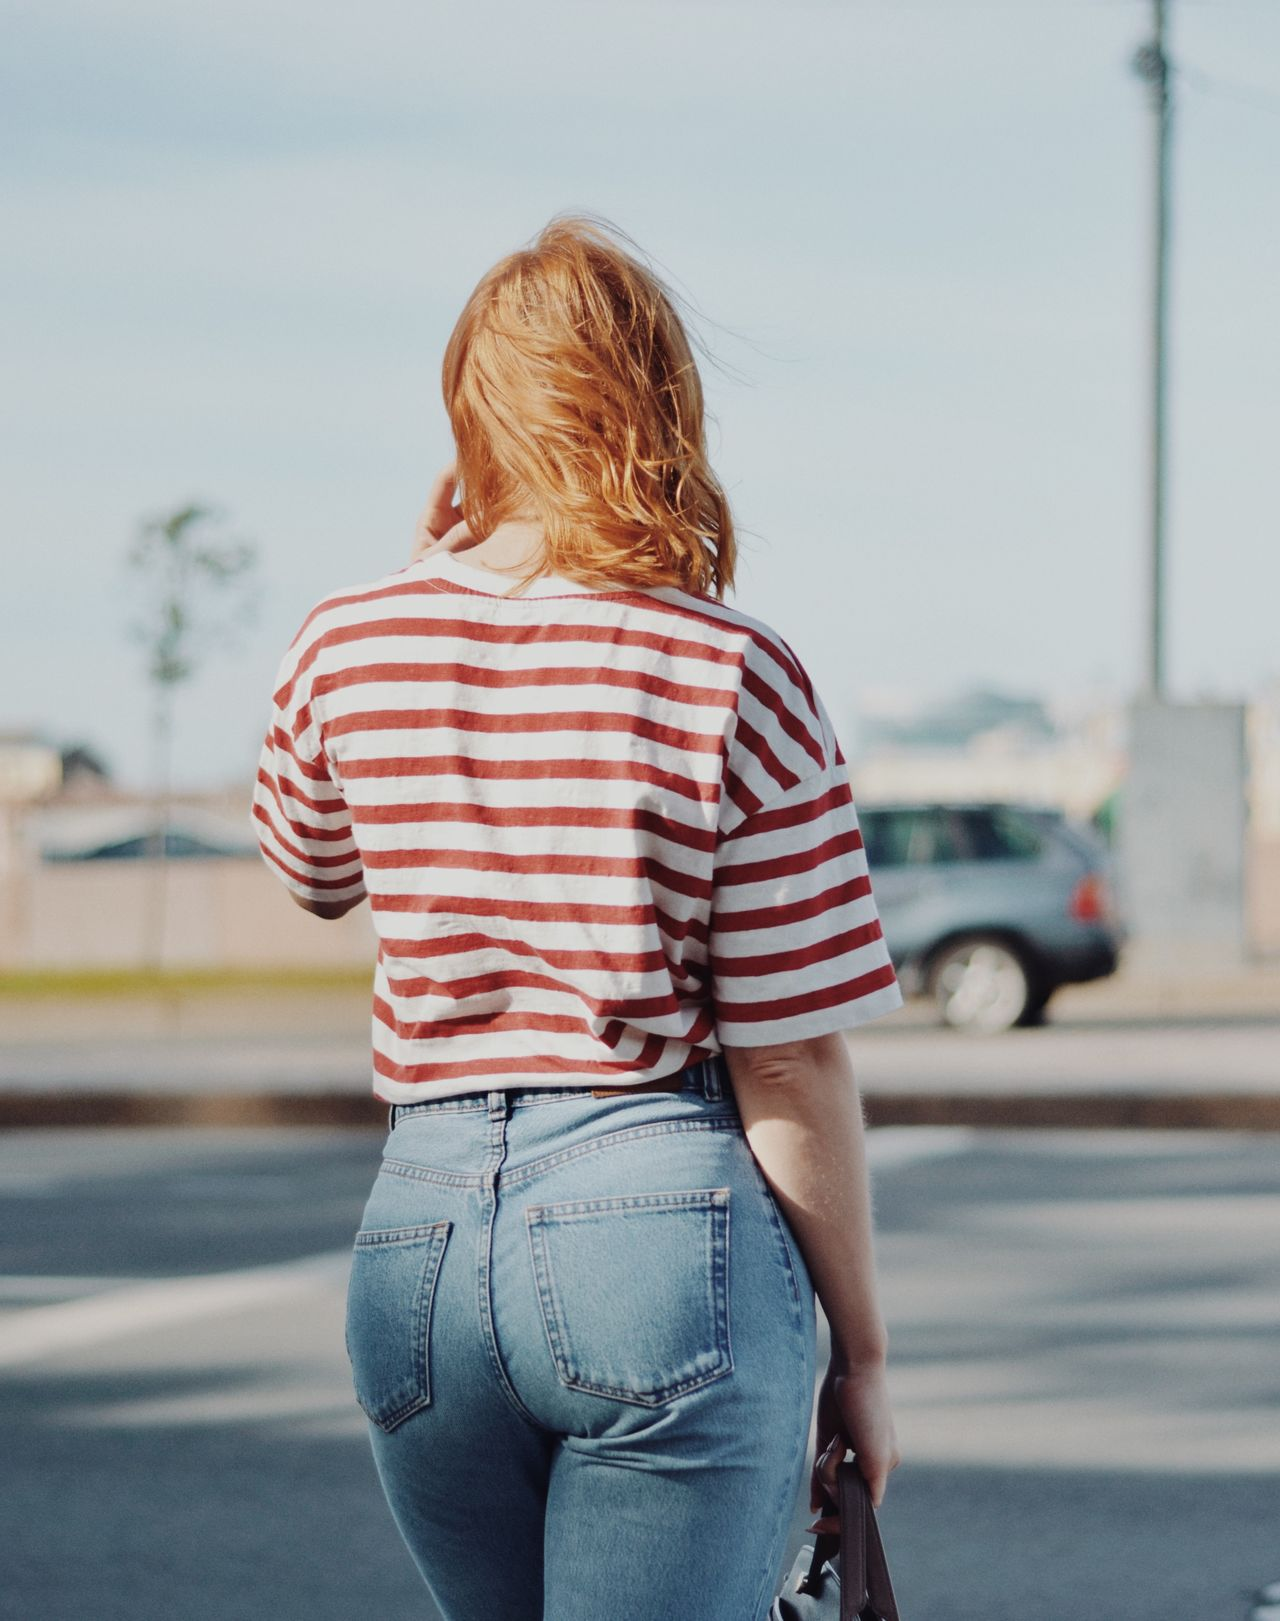 Boots Casual Look Portrait of a Woman blond hair casual clothing clothes day focus on foreground girl leisure activity lifestyles one person outdoors portrait real people Rear view Road sexygirl Standing streetphotography striped Transportation urbanphotography young adult young women Fresh on Market 2017